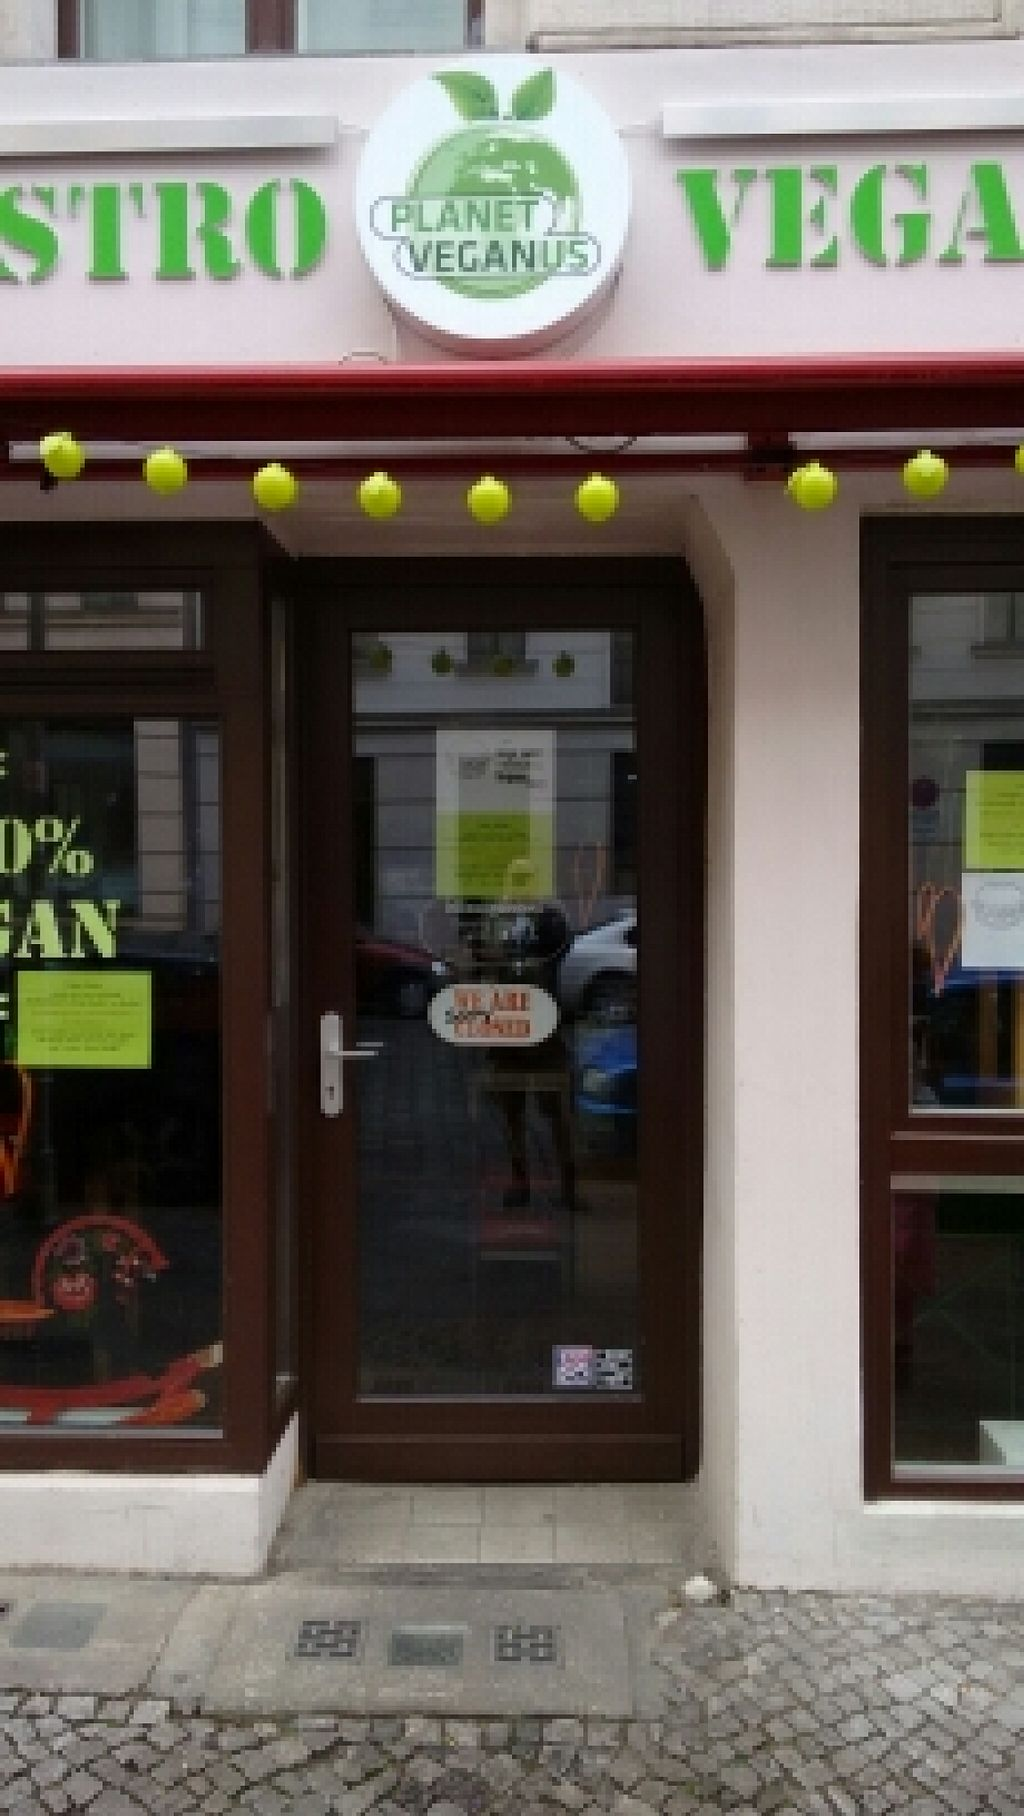 """Photo of CLOSED: Planet Veganus  by <a href=""""/members/profile/craigmc"""">craigmc</a> <br/>not open!  <br/> March 30, 2016  - <a href='/contact/abuse/image/57291/141857'>Report</a>"""